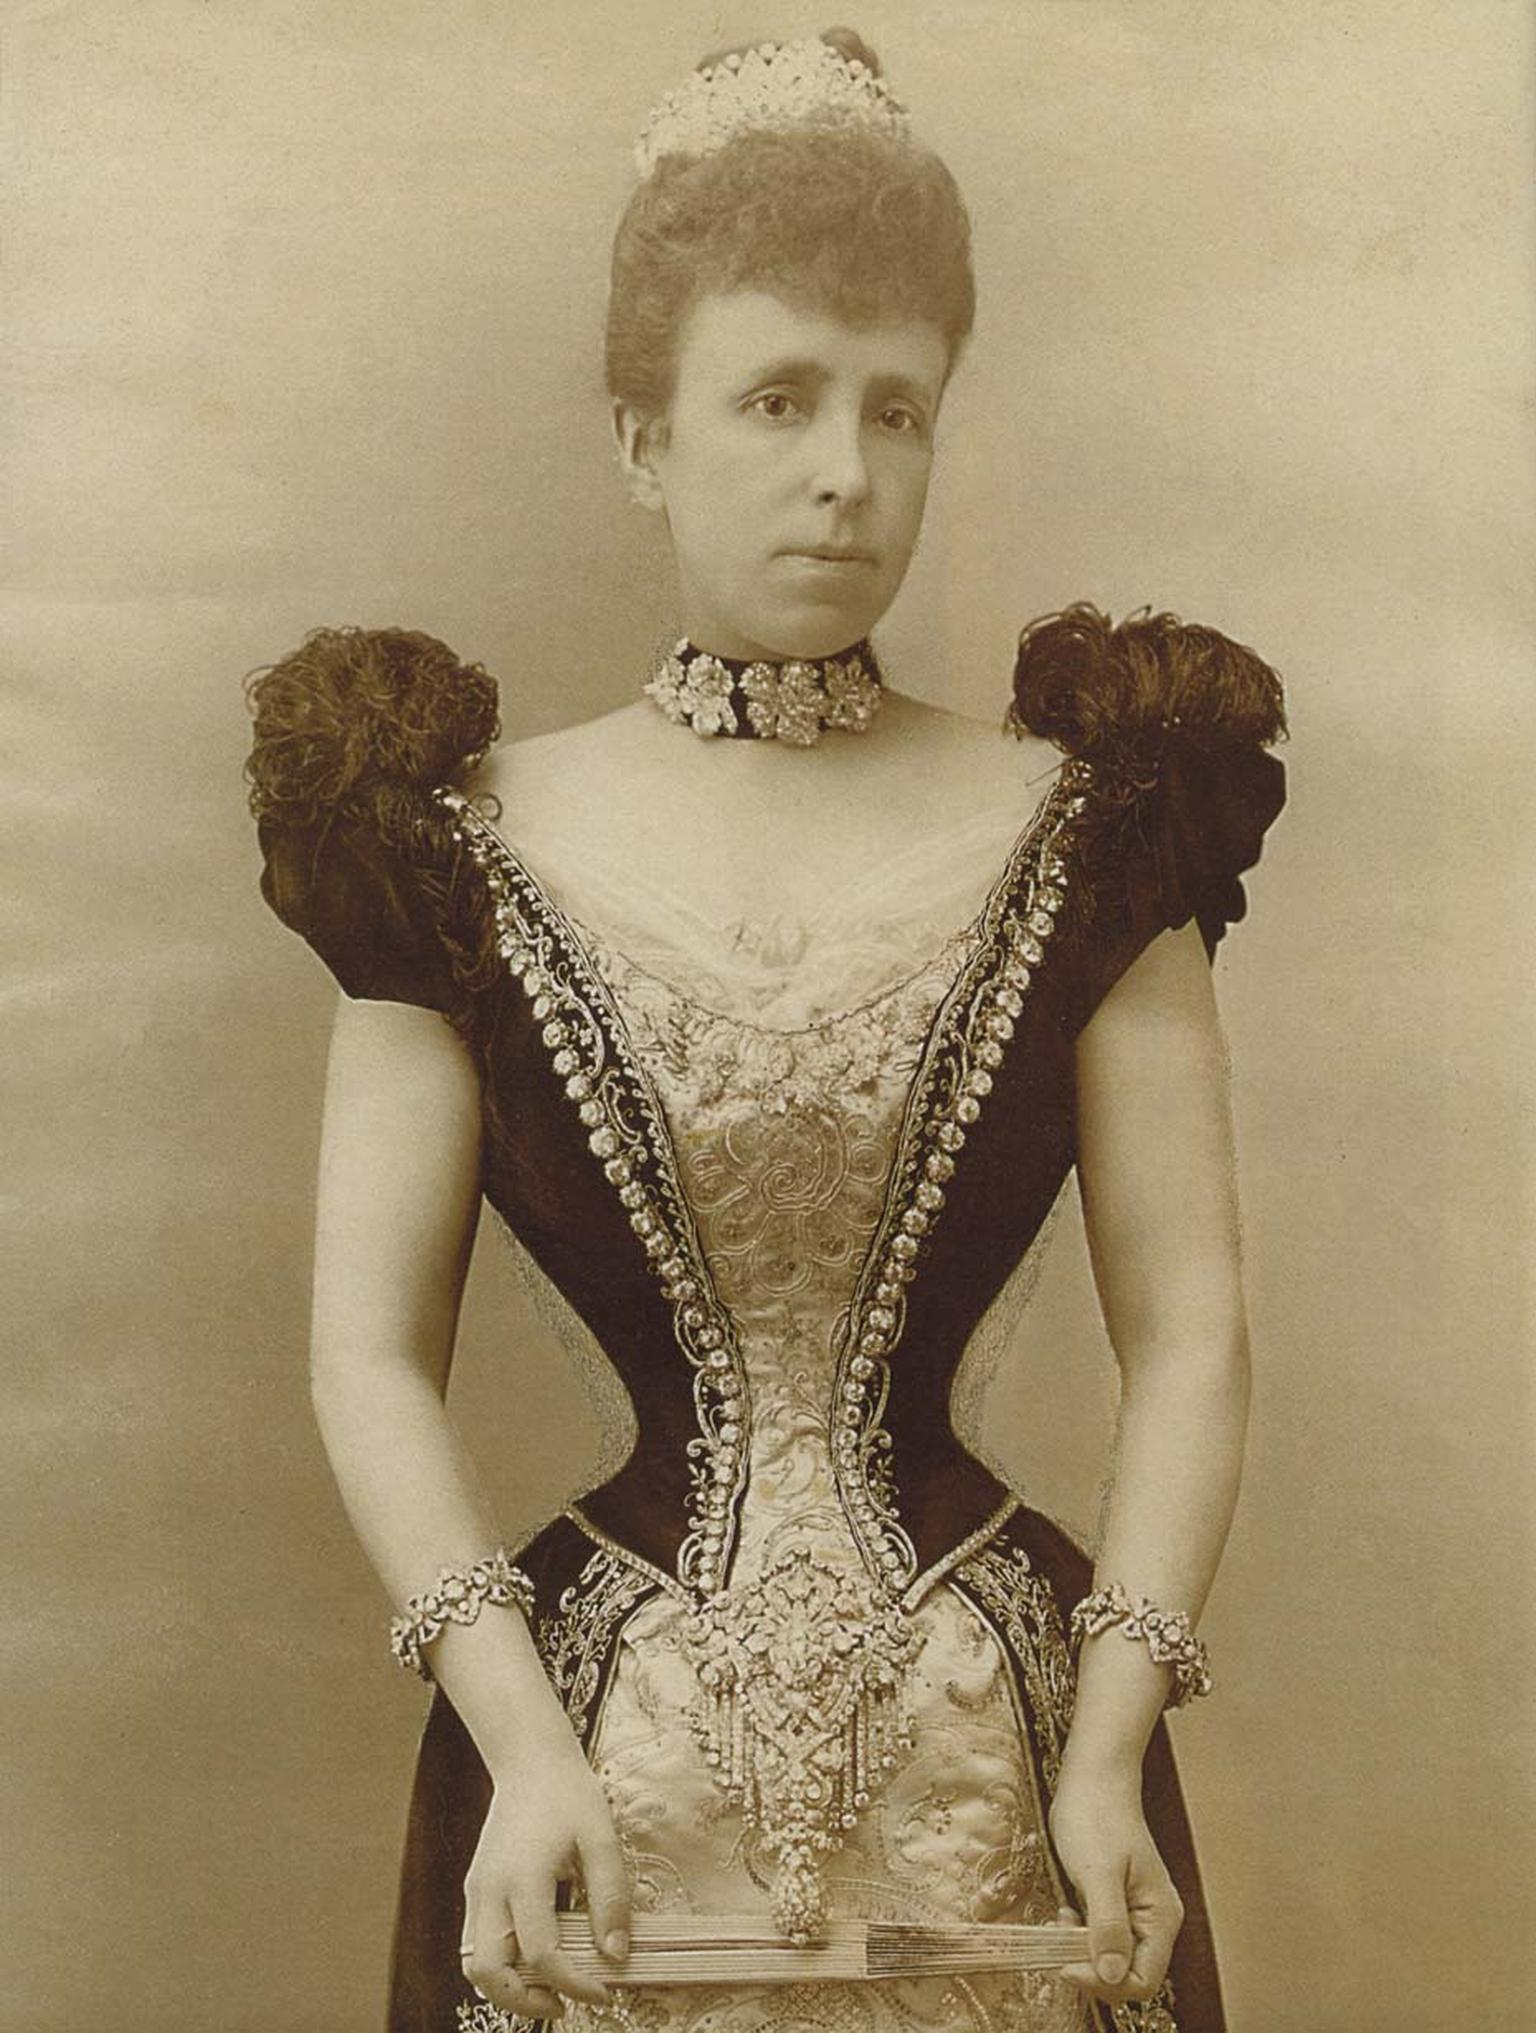 The Archduchess Maria Christina of Austria pictured in 1879 wearing the Maria Christina Royal Devant-de-Corsage diamond brooch, which was given to her as a wedding present by King Alfonso XII of Spain.